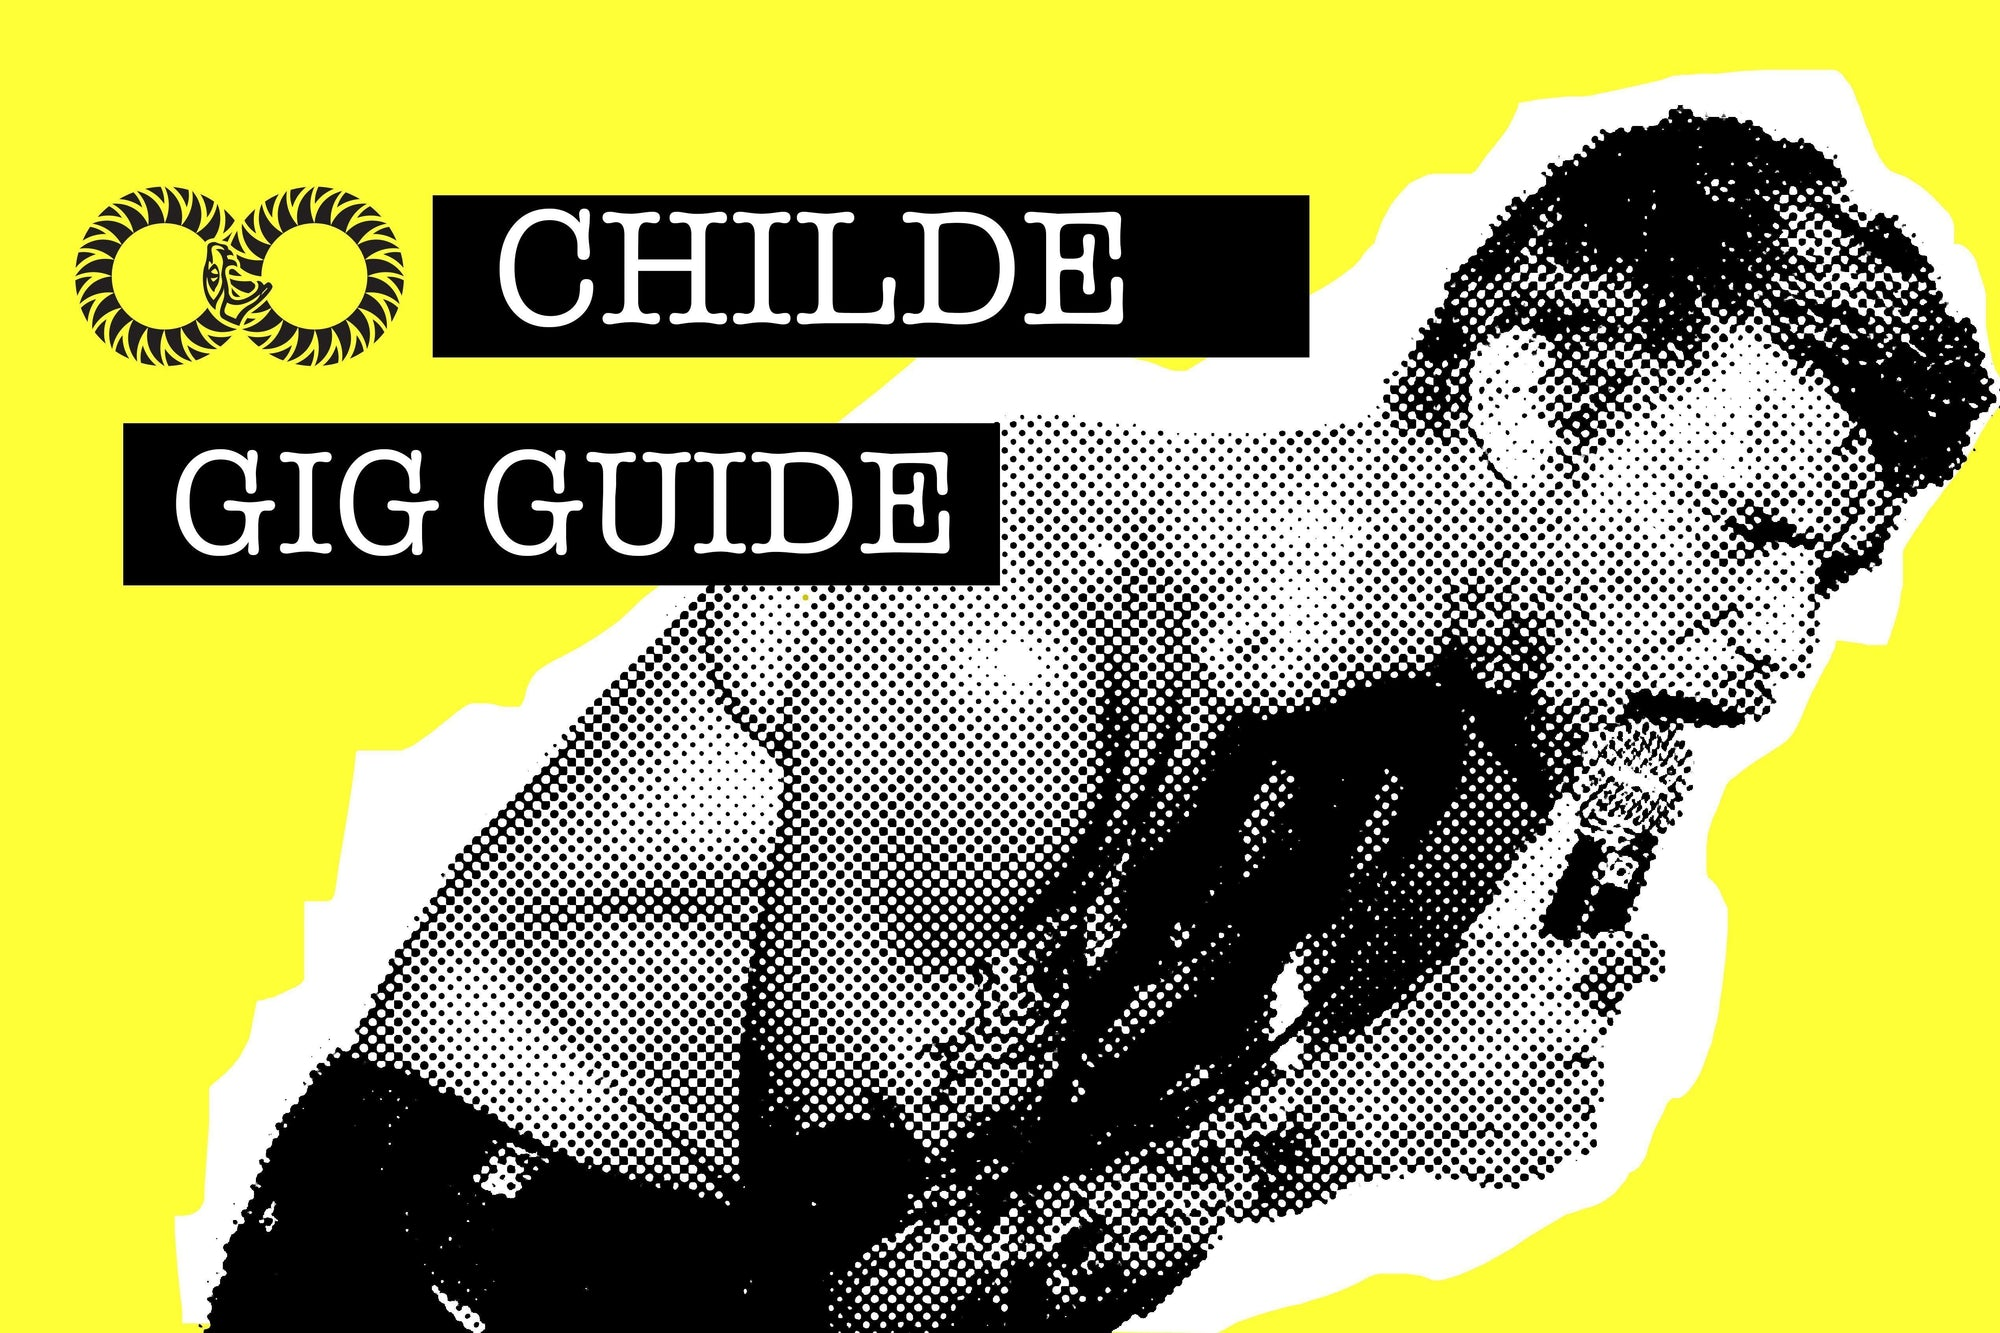 CHILDE | Gig Guide